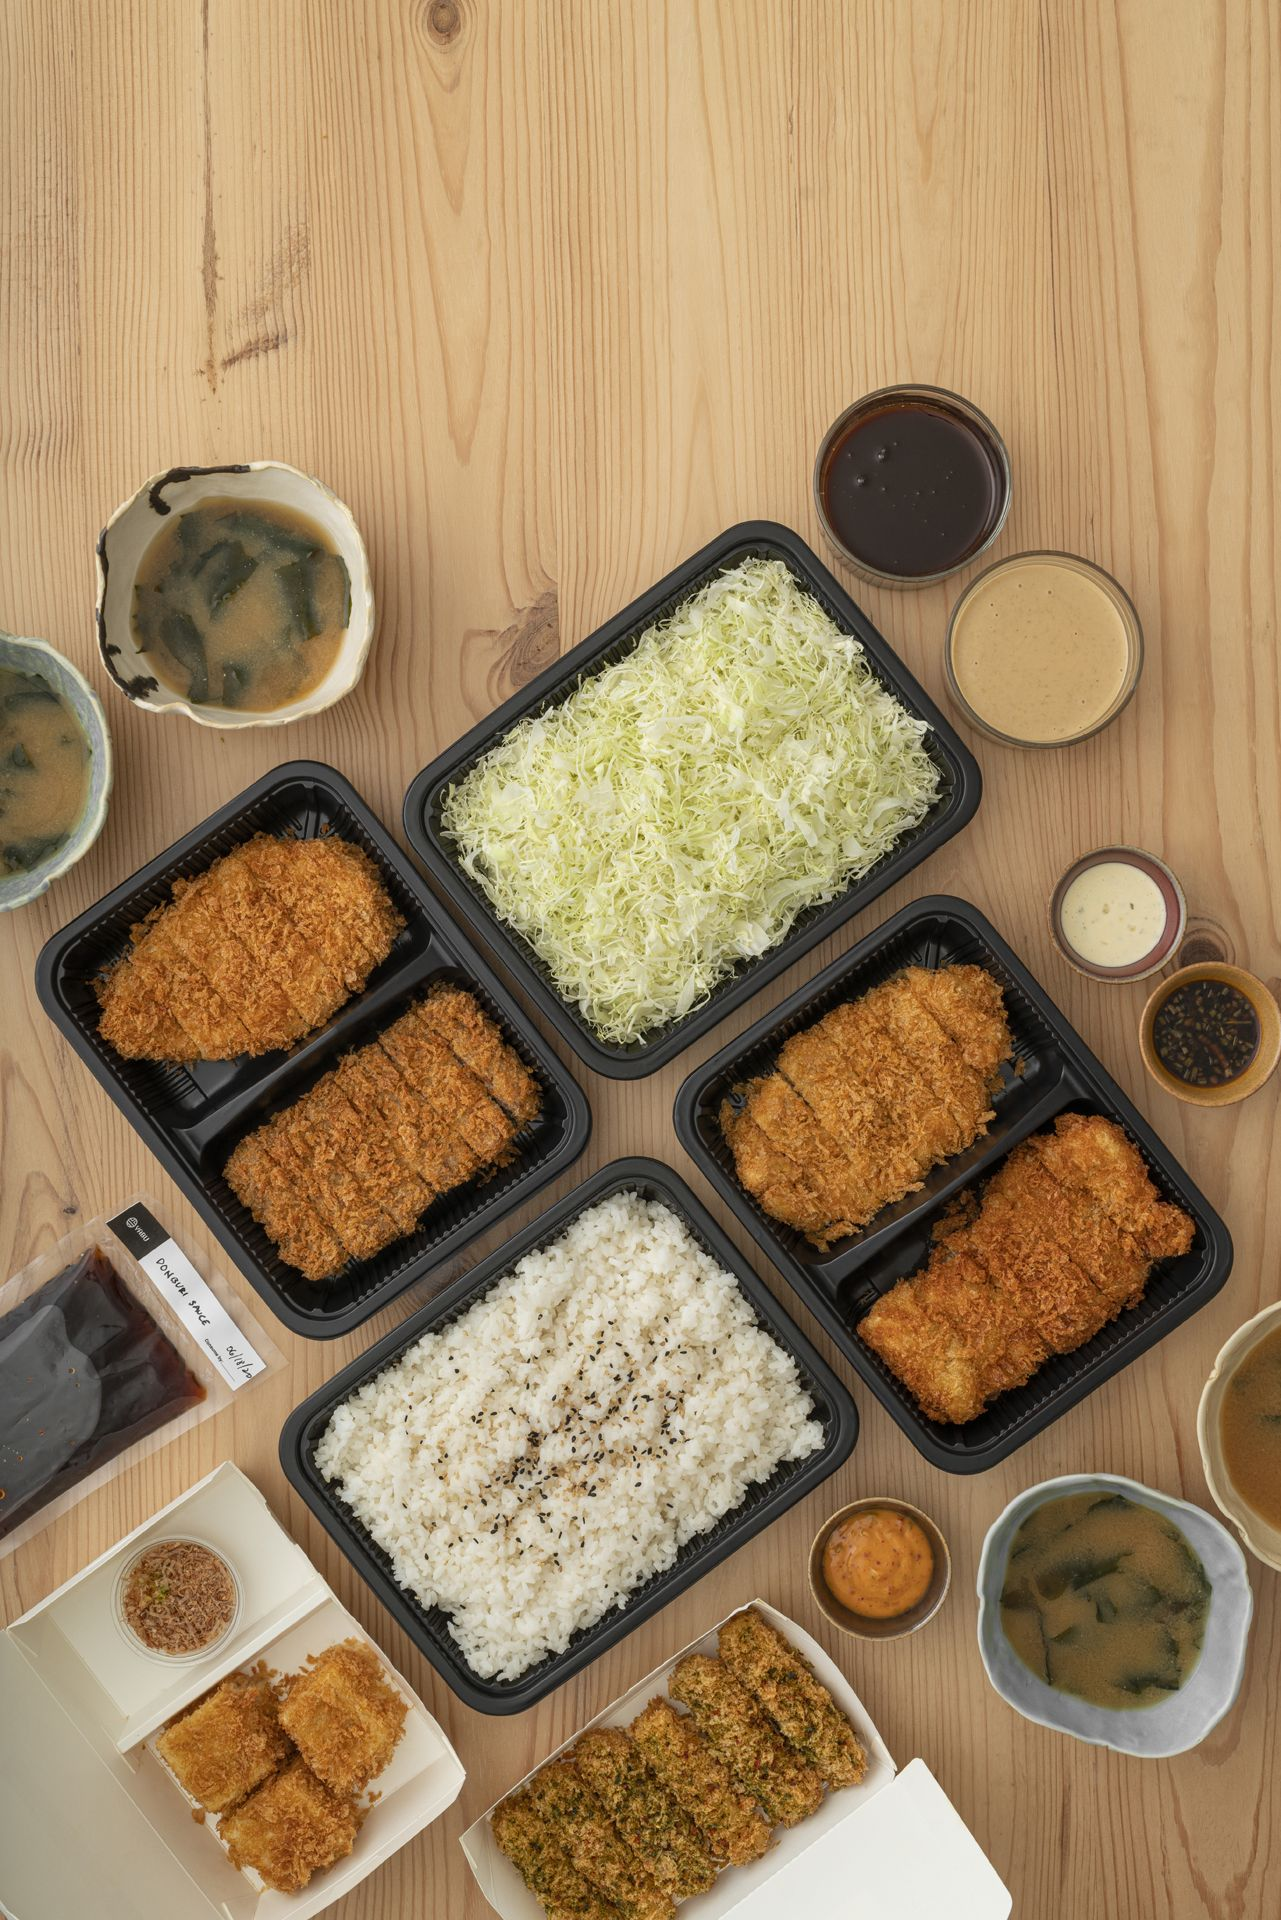 Dining Update: Yabu Now Has Special Deals For Take-Out Orders